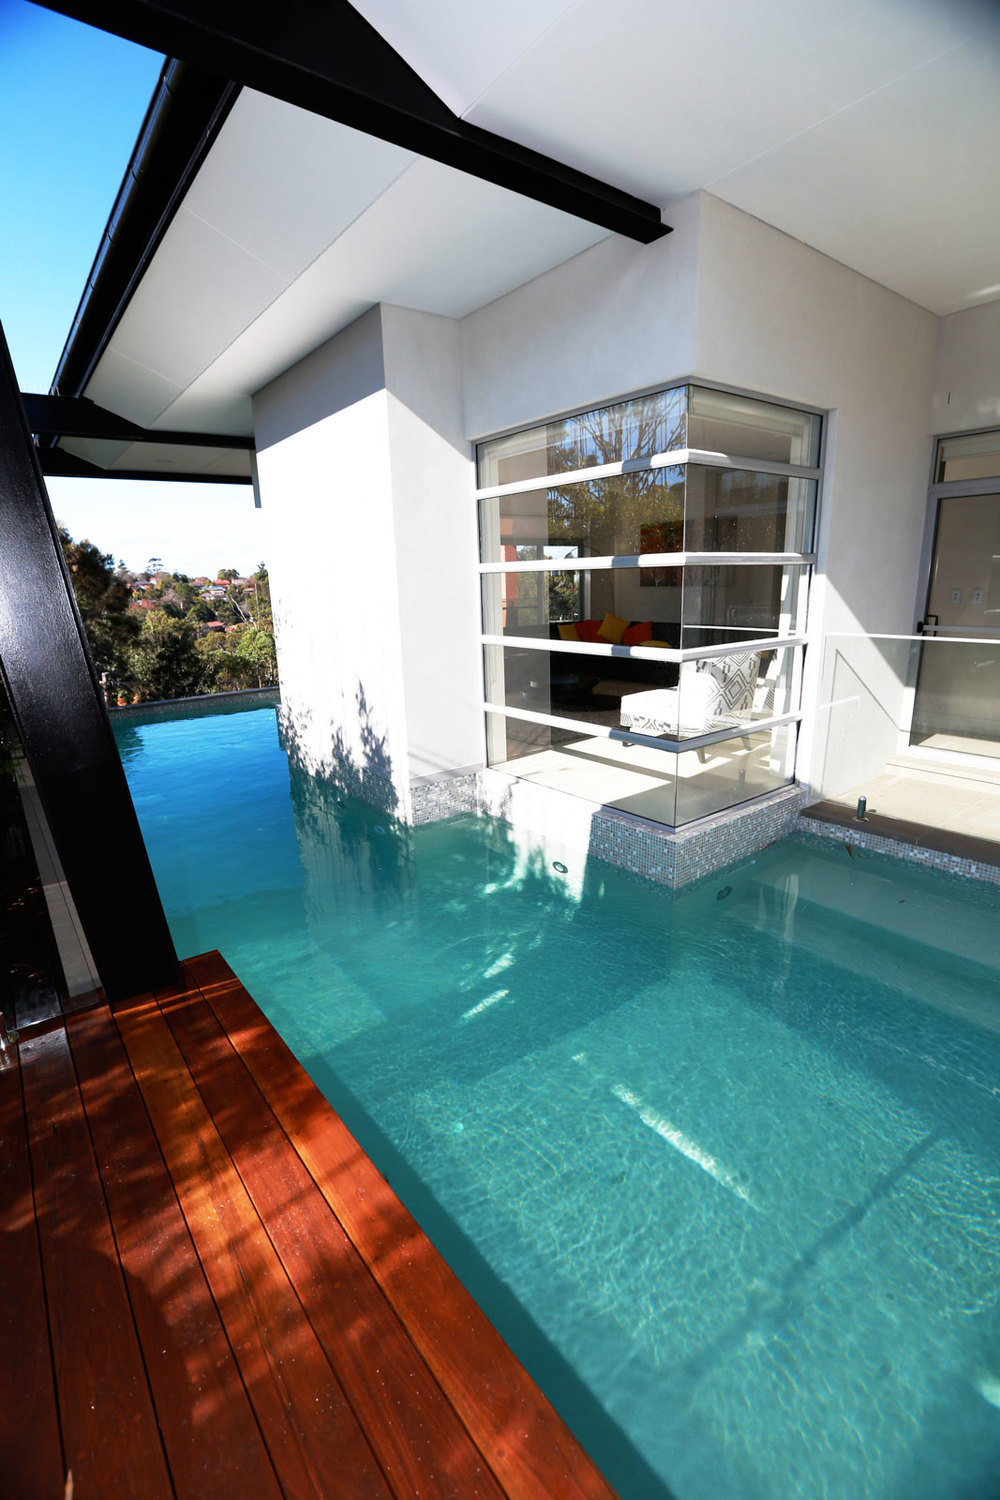 Swimming Pools Are A Quintessential Part Of The Residential Australian Setting But Important Interplay Between Great Pool Design And